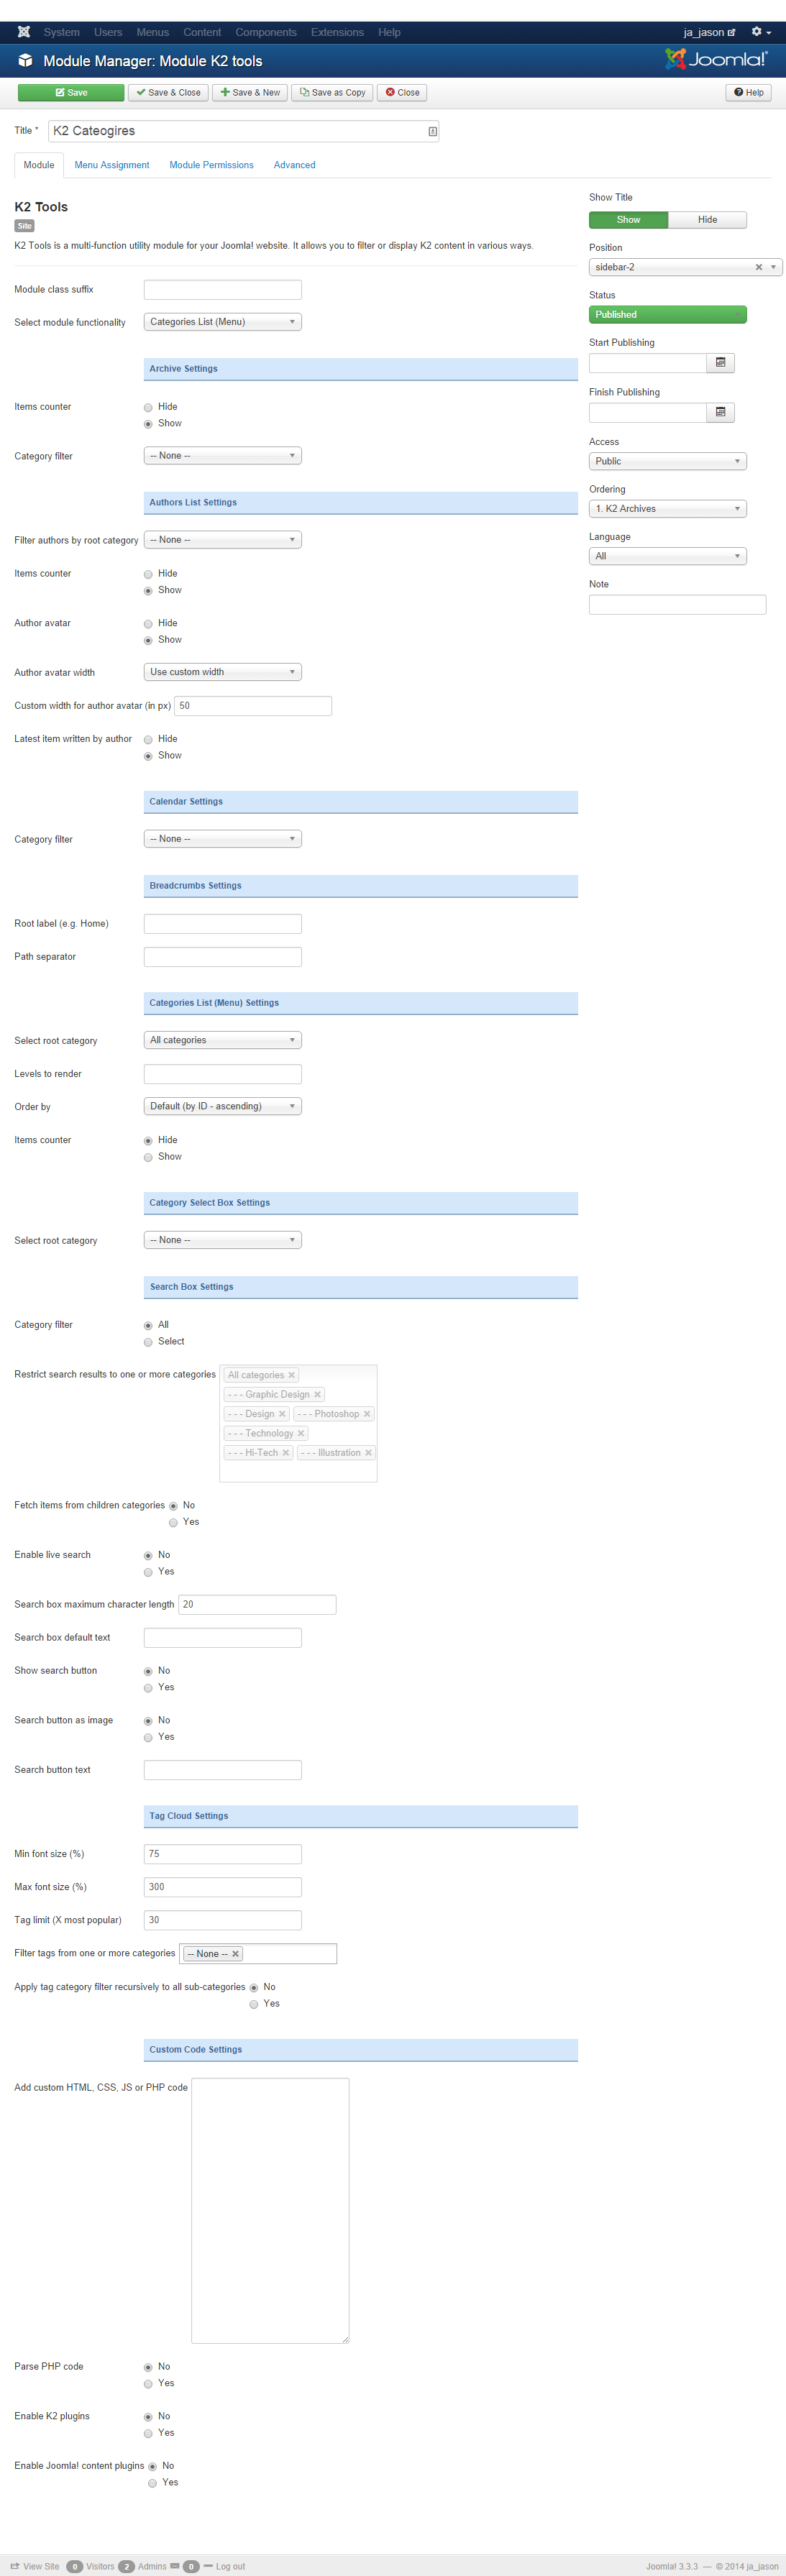 Noo k2 category items module helps you show all latest, most popular k2 items in each category in a bootstrap tab